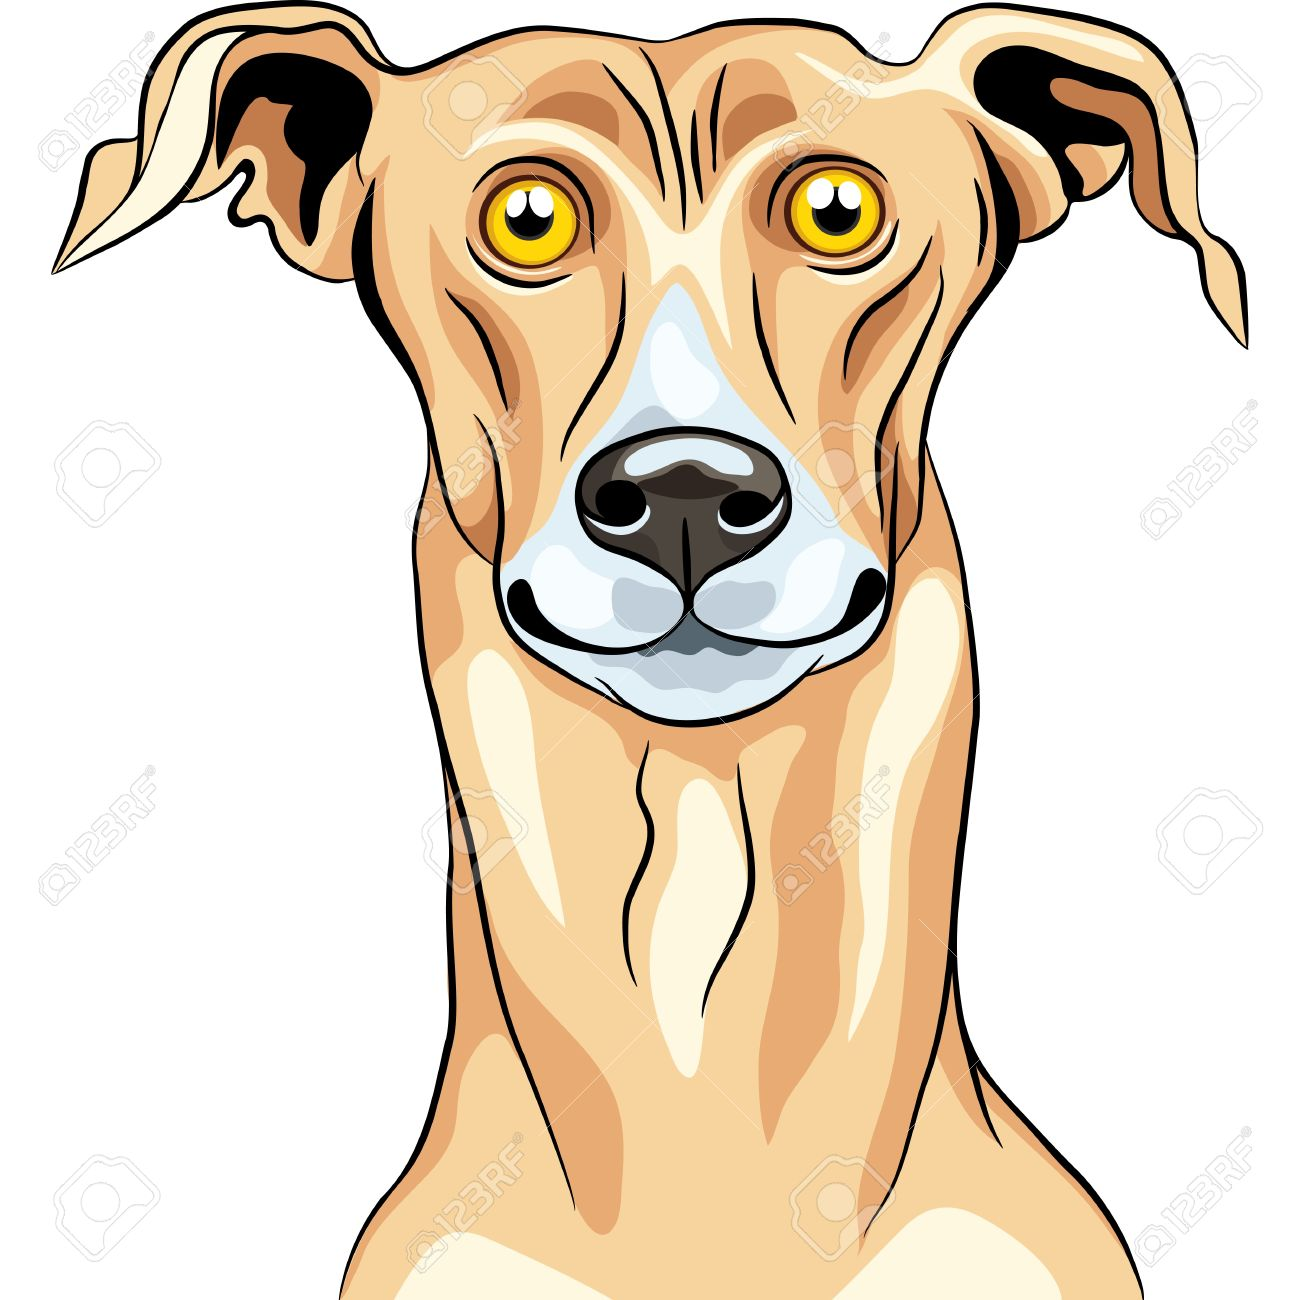 Greyhound clipart #8, Download drawings